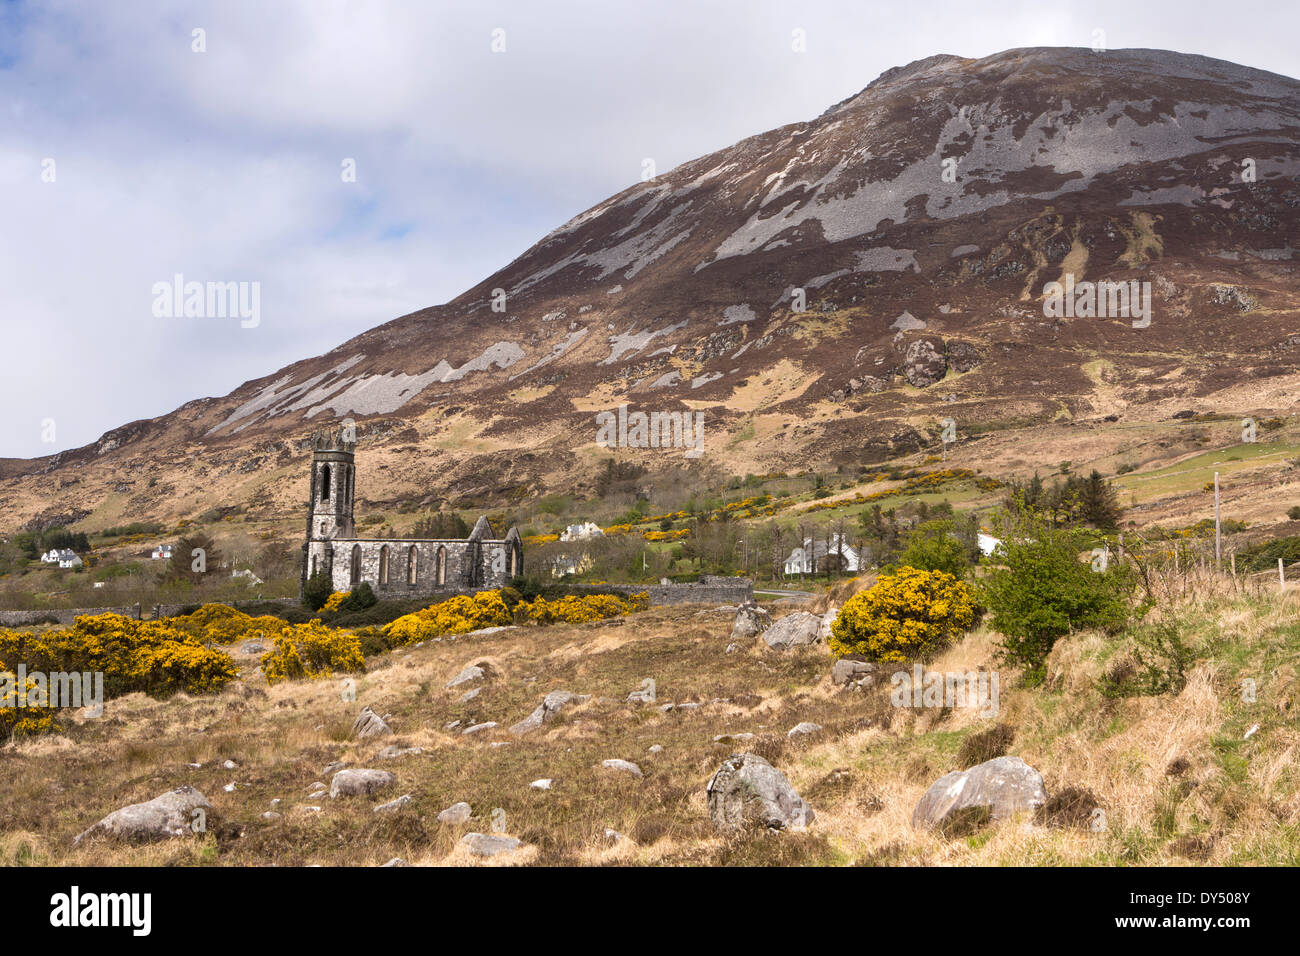 Ireland, Co Donegal, Dunlewey, abandoned Glenveagh Estate Protestant Church below Mt Errigal - Stock Image